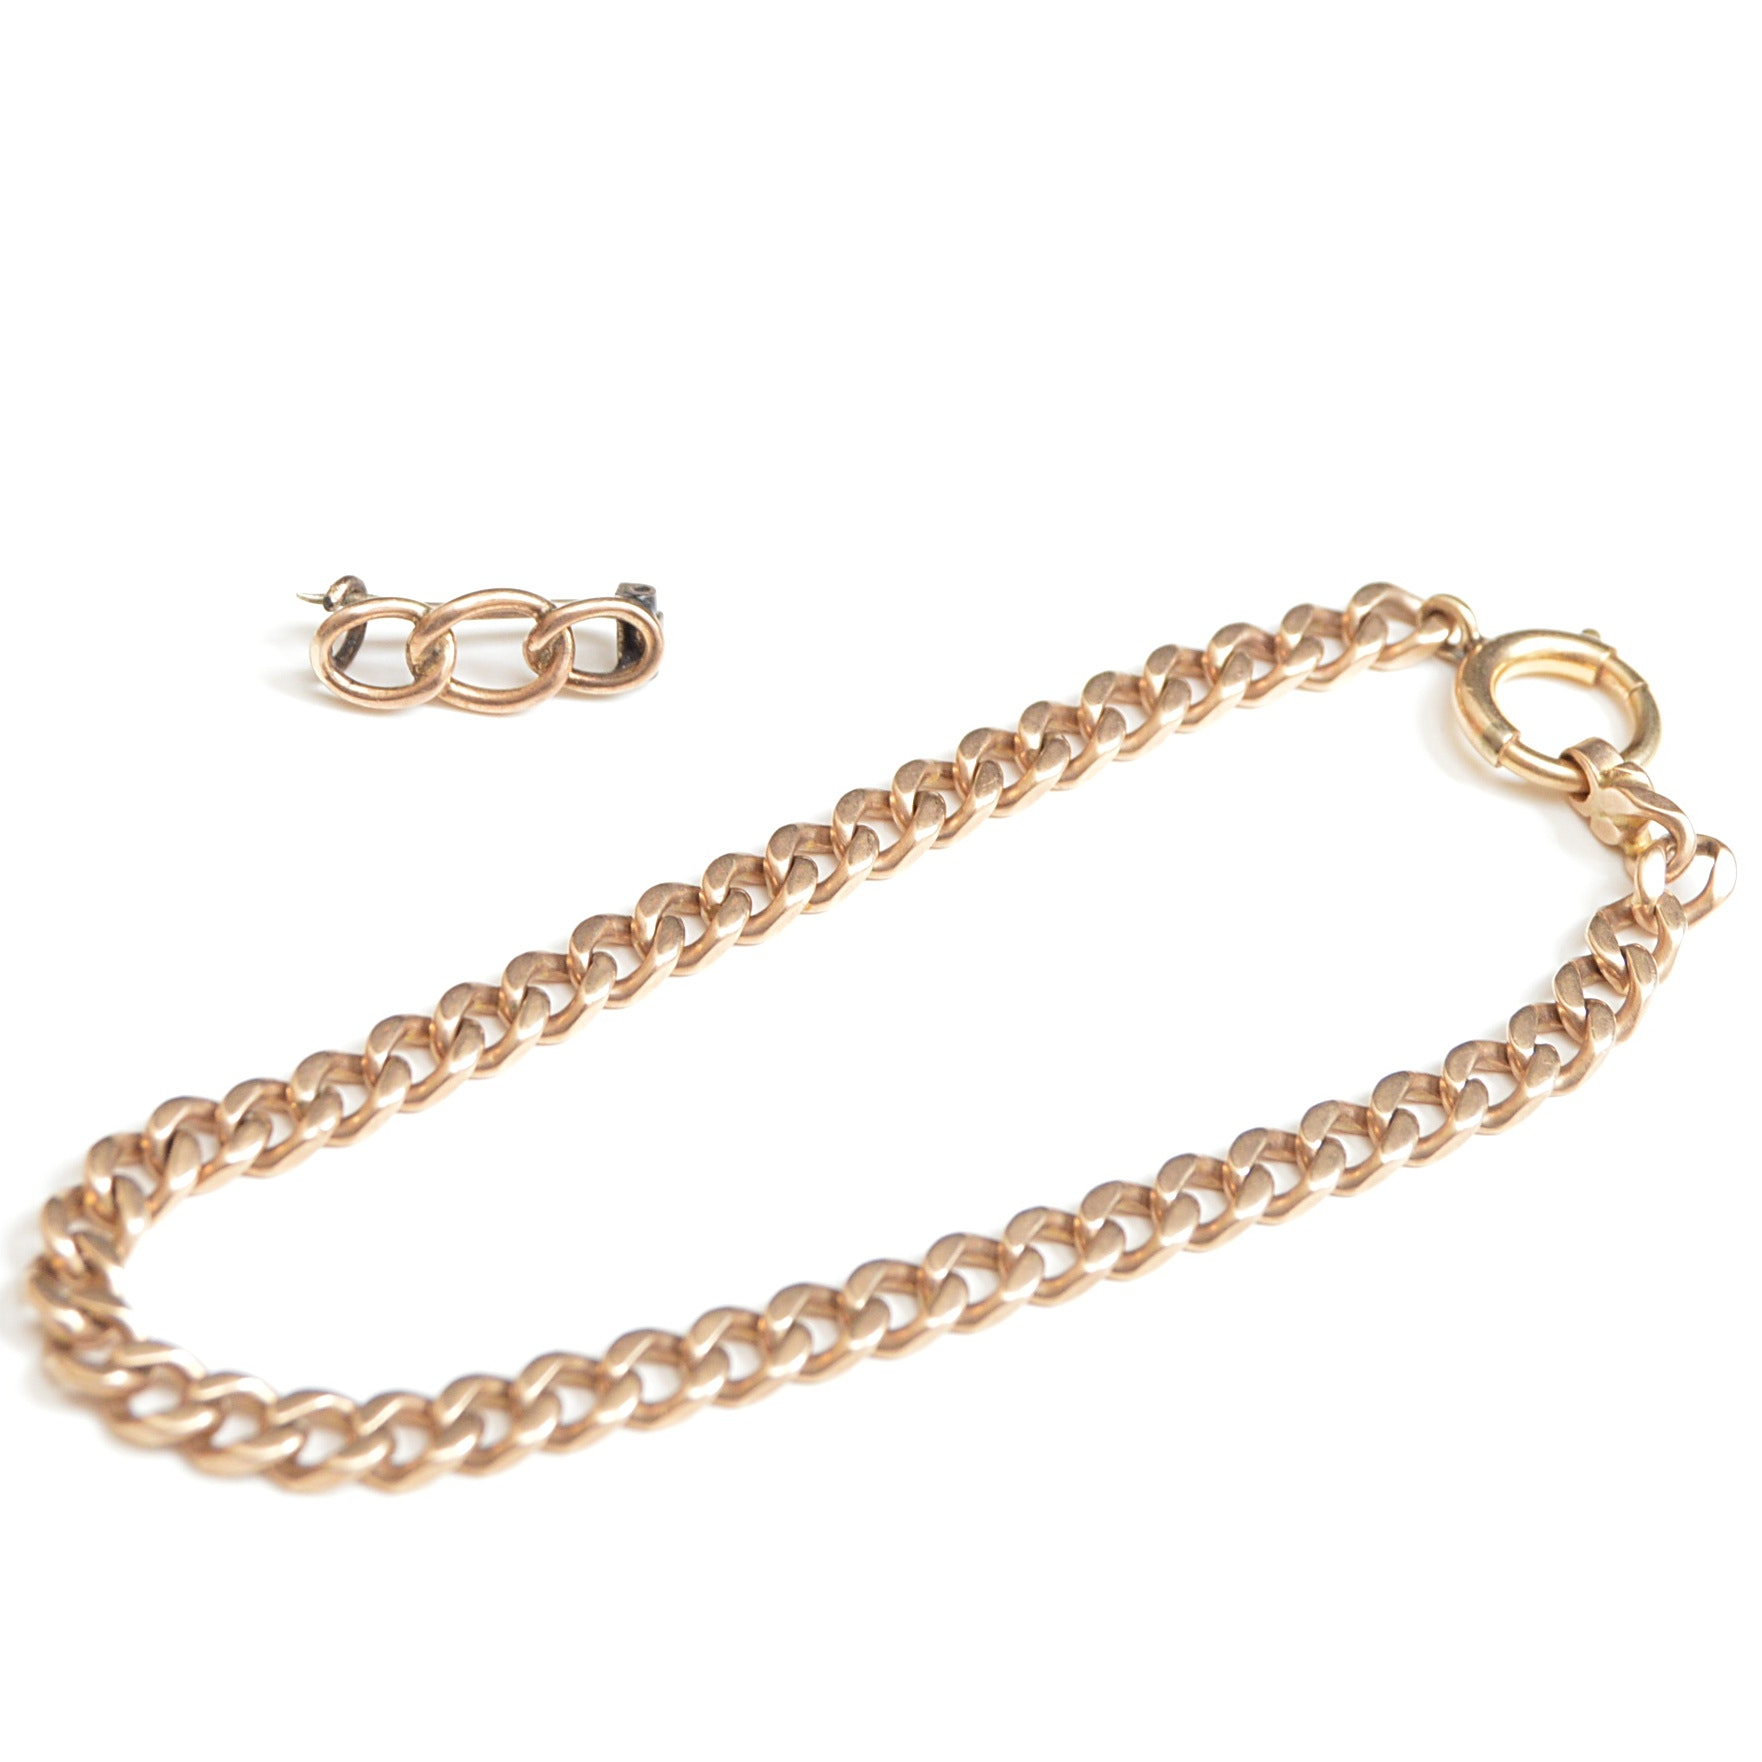 10K Yellow Gold Chain Bracelet and Link Brooch